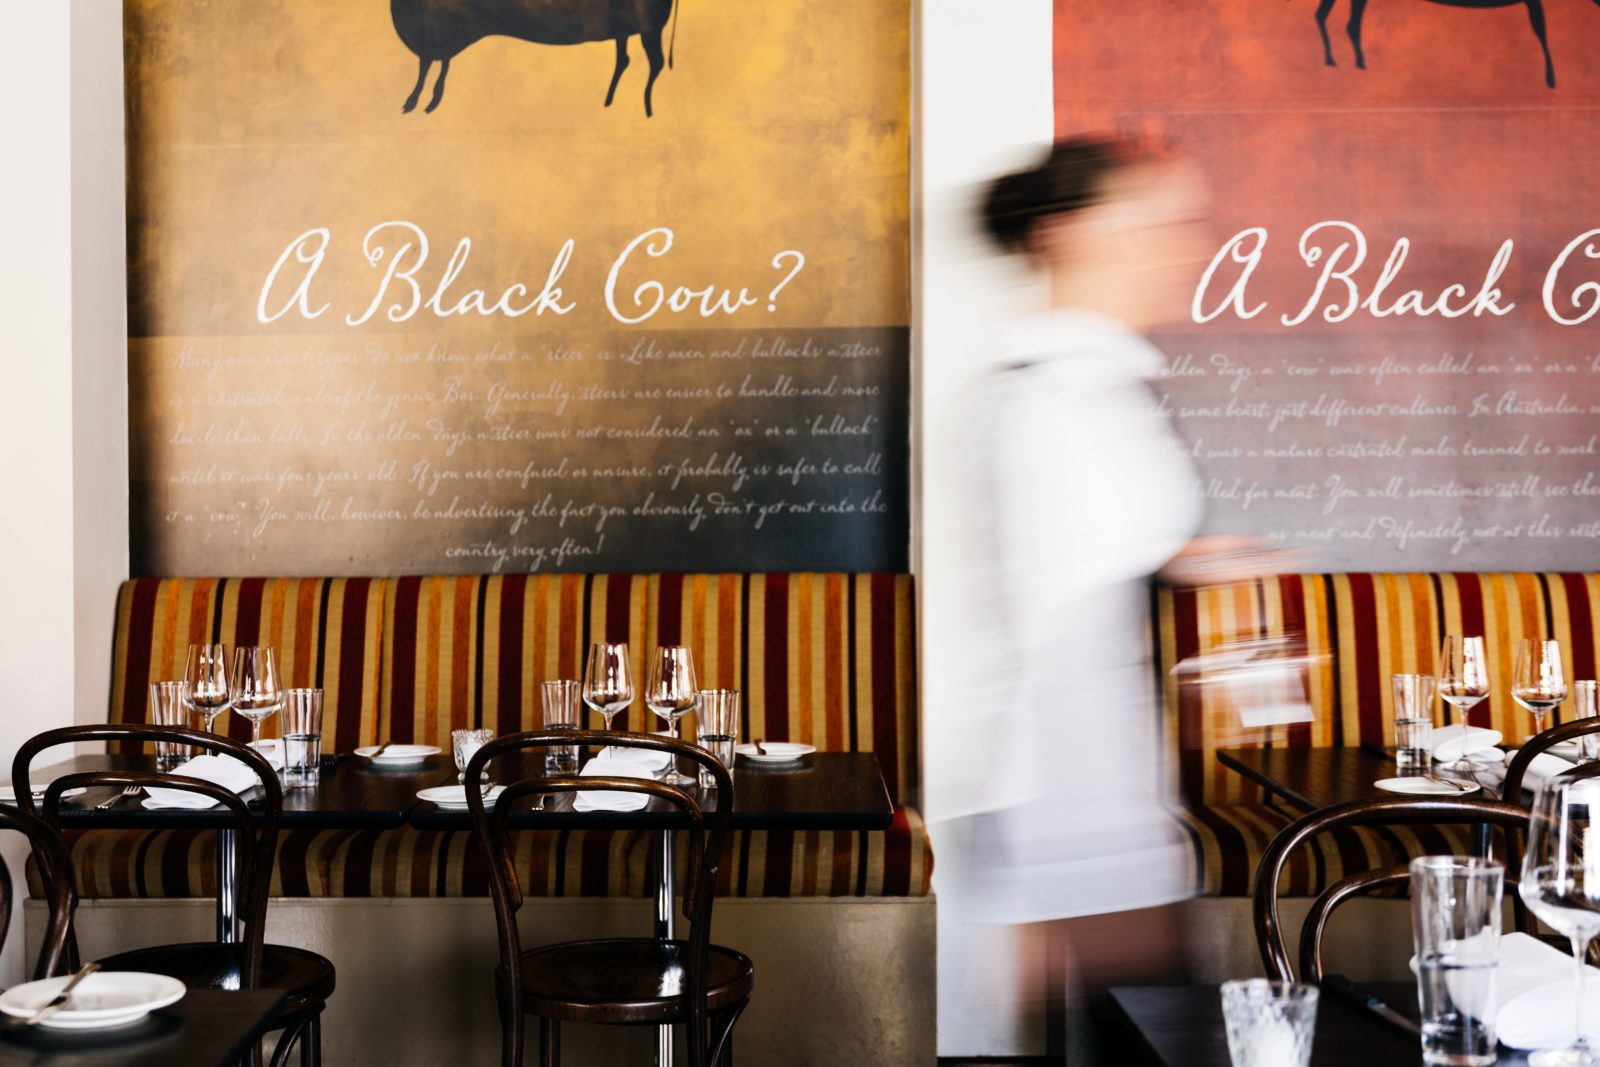 Black Cow Bistro Launceston Tasmania Restaurant